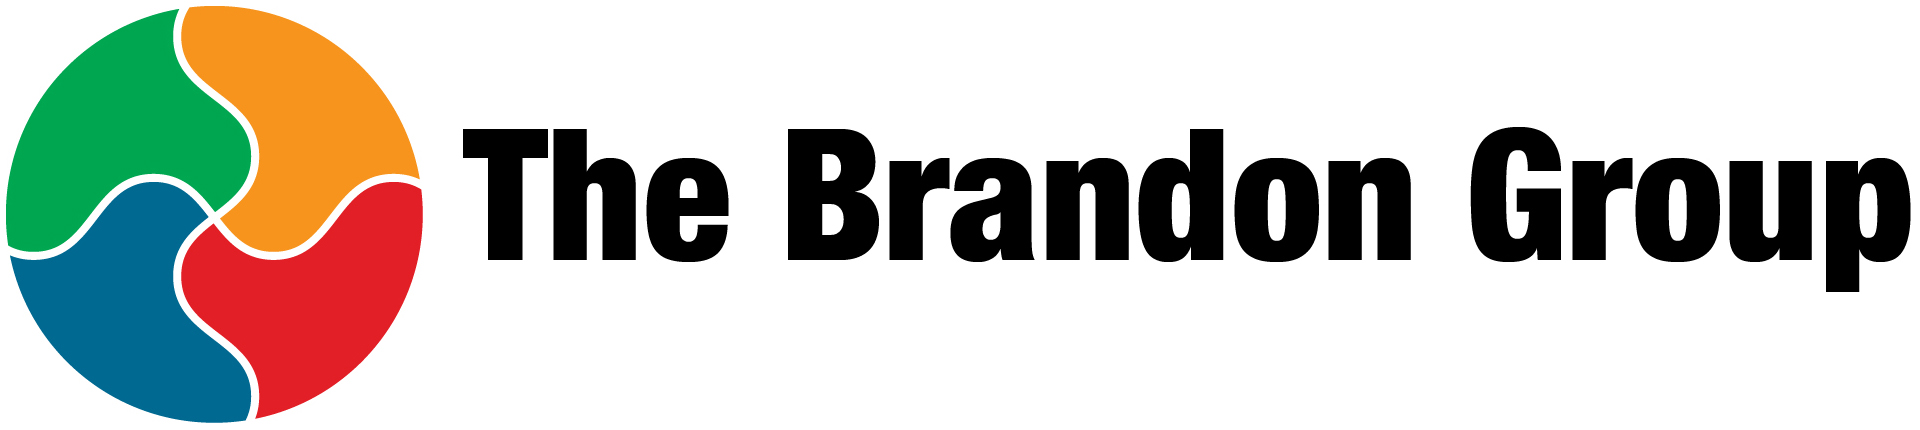 The Brandon Group LLC